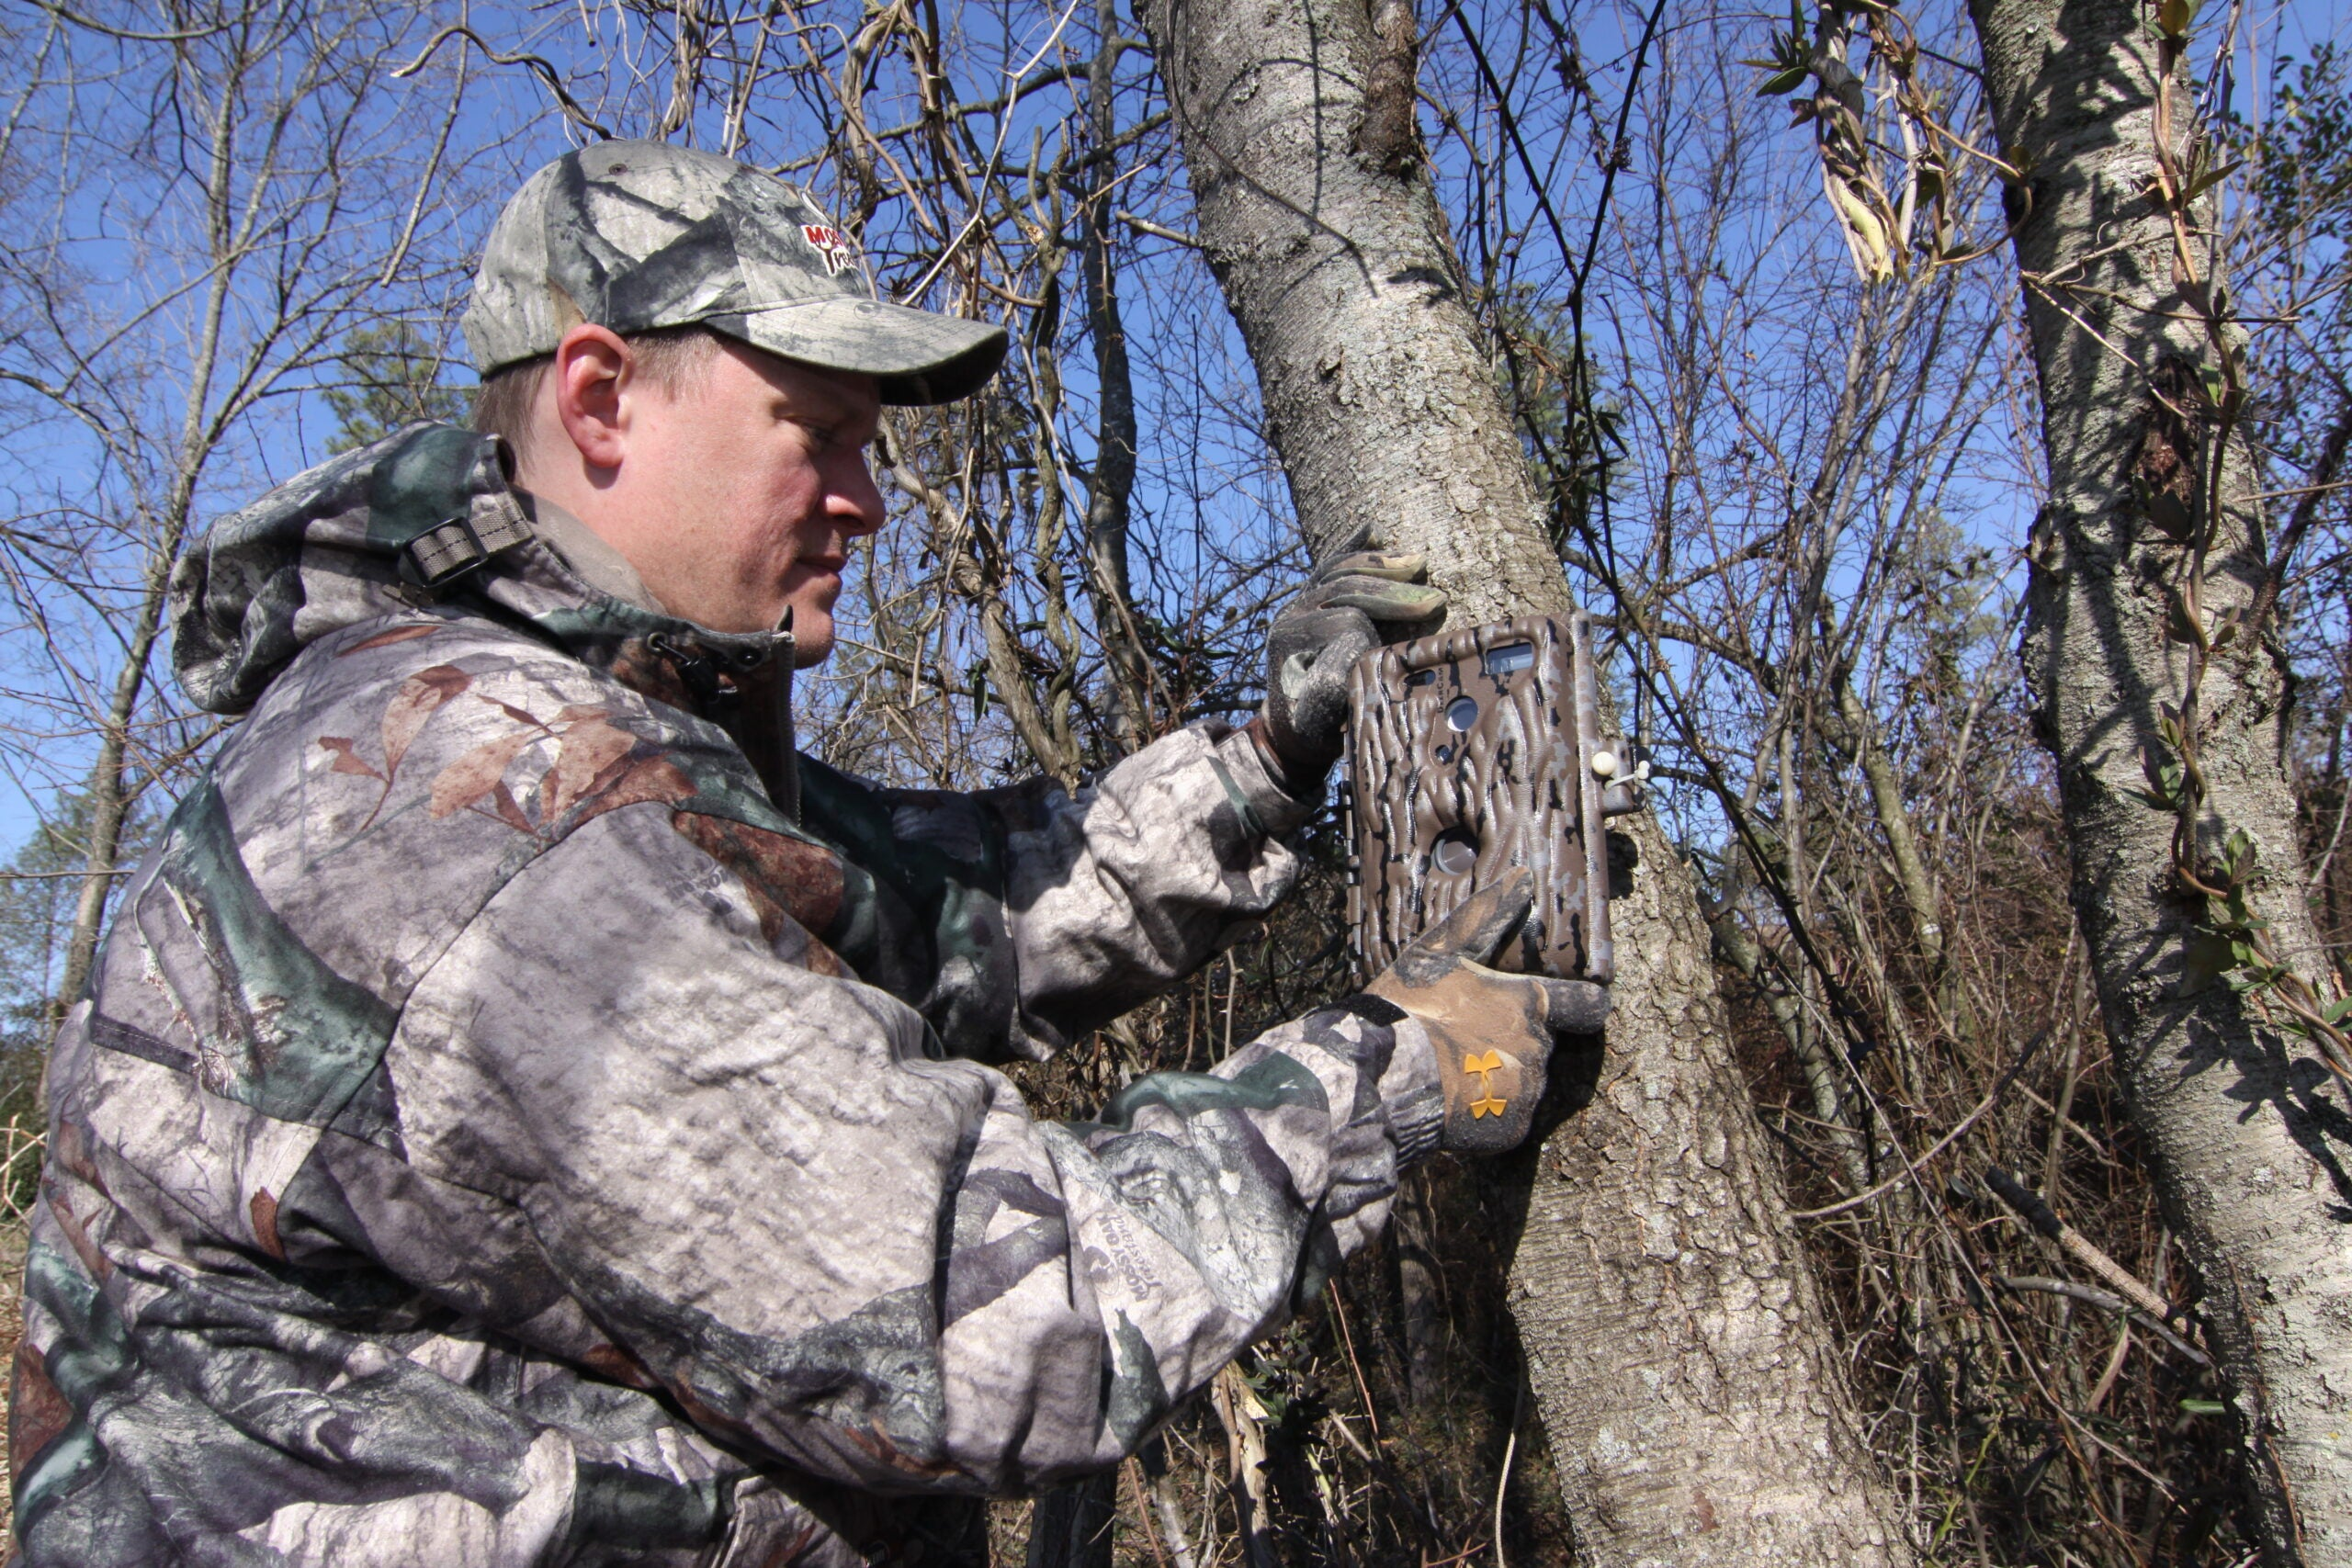 Outlawing Trail Cameras Coming to Your State Soon